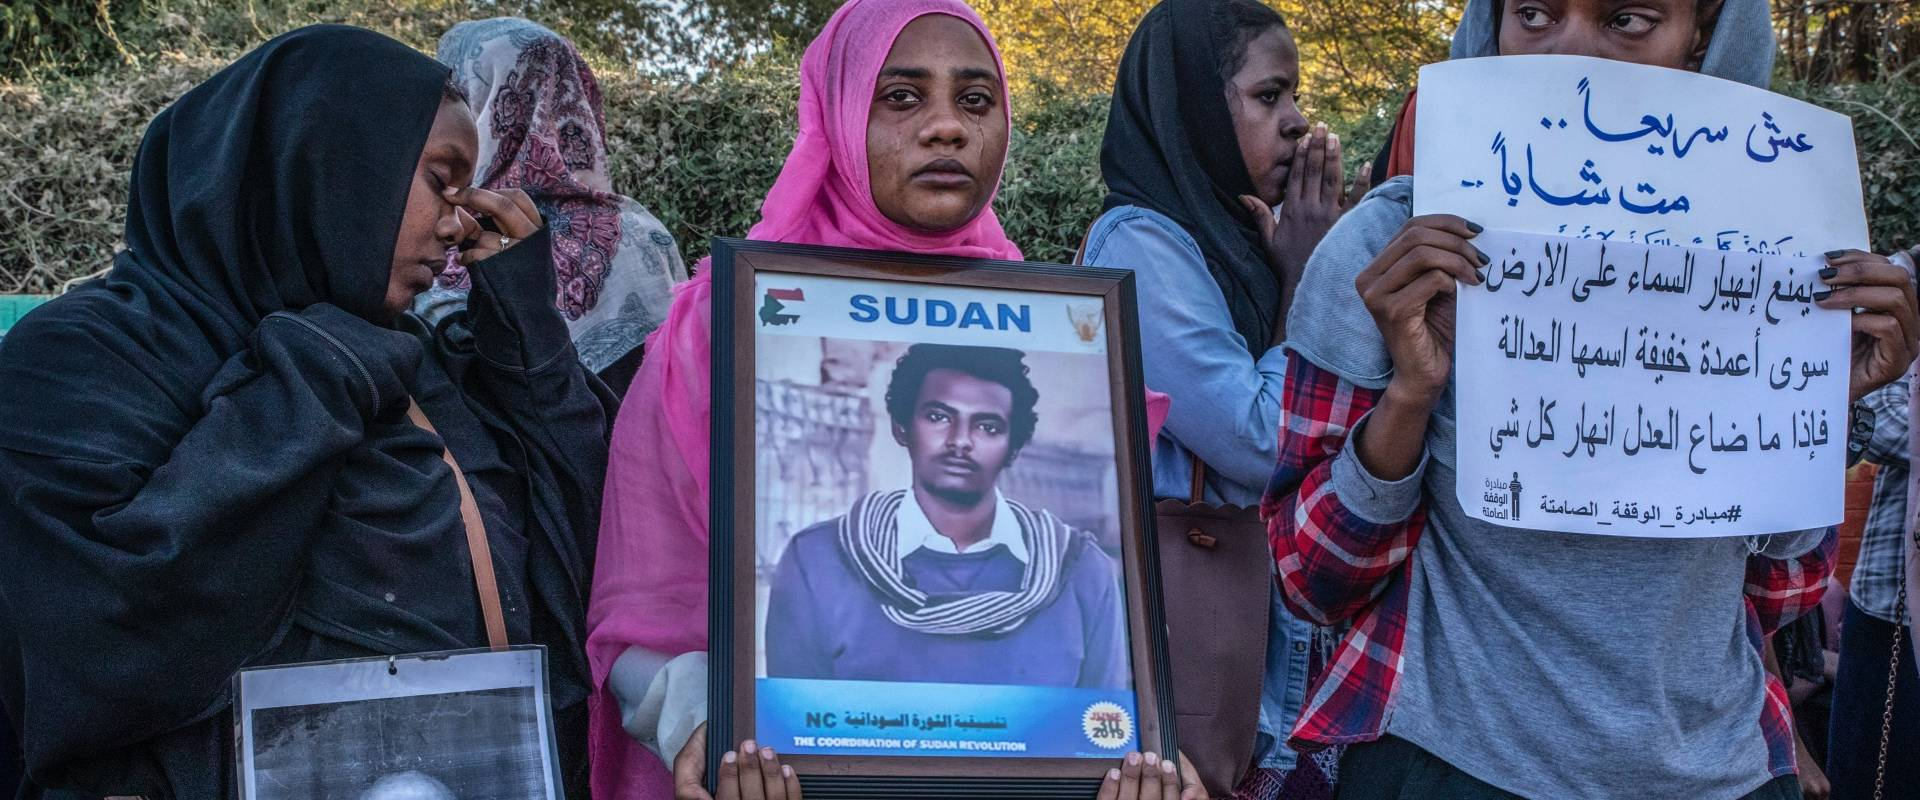 Sudan's Unfinished Revolution